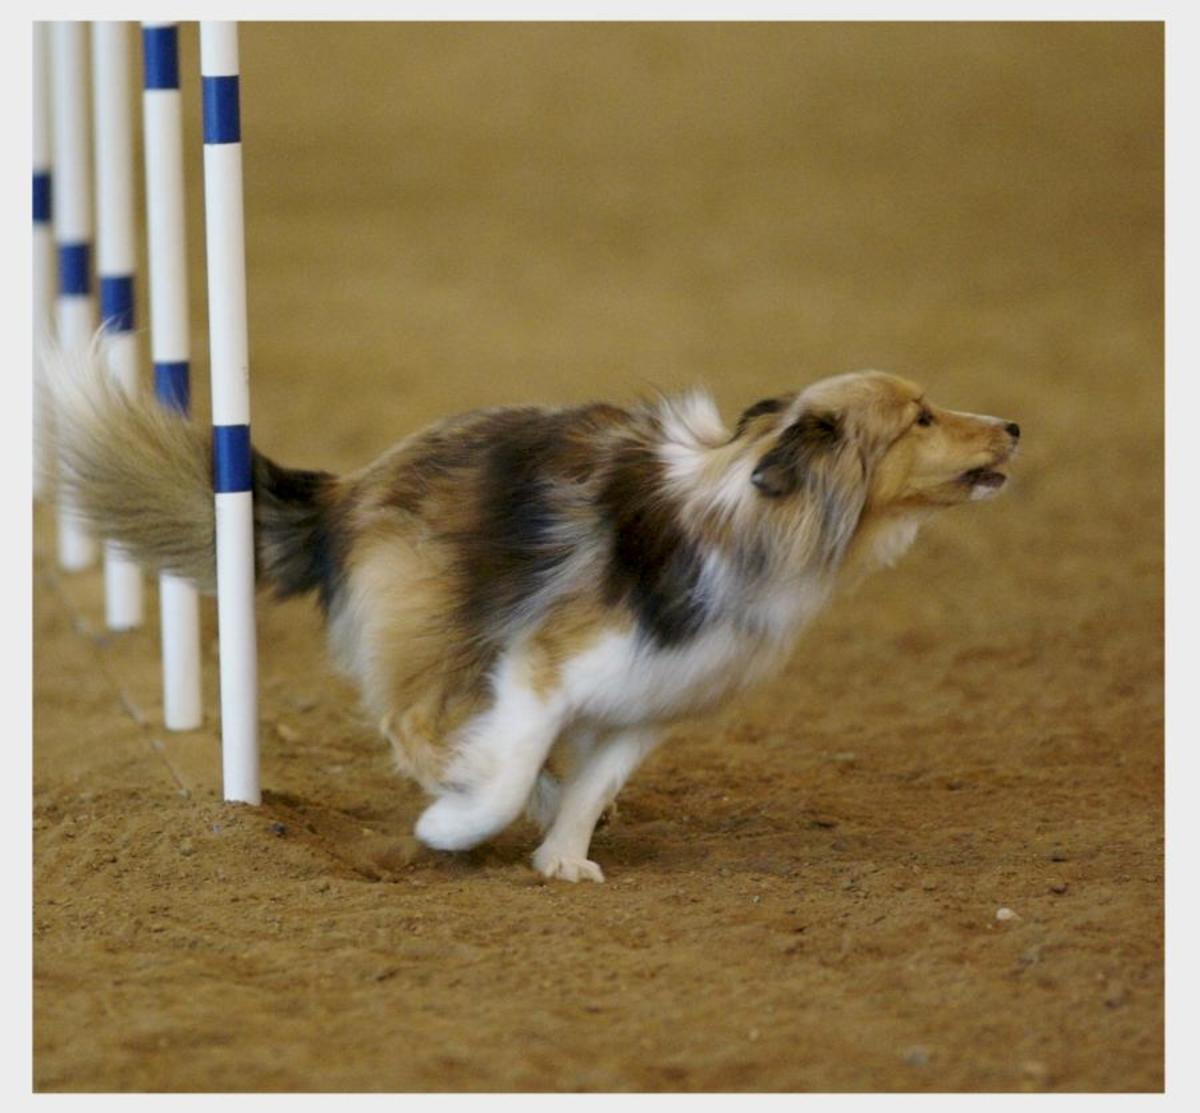 A Sheltie barking as he exits the weaves.